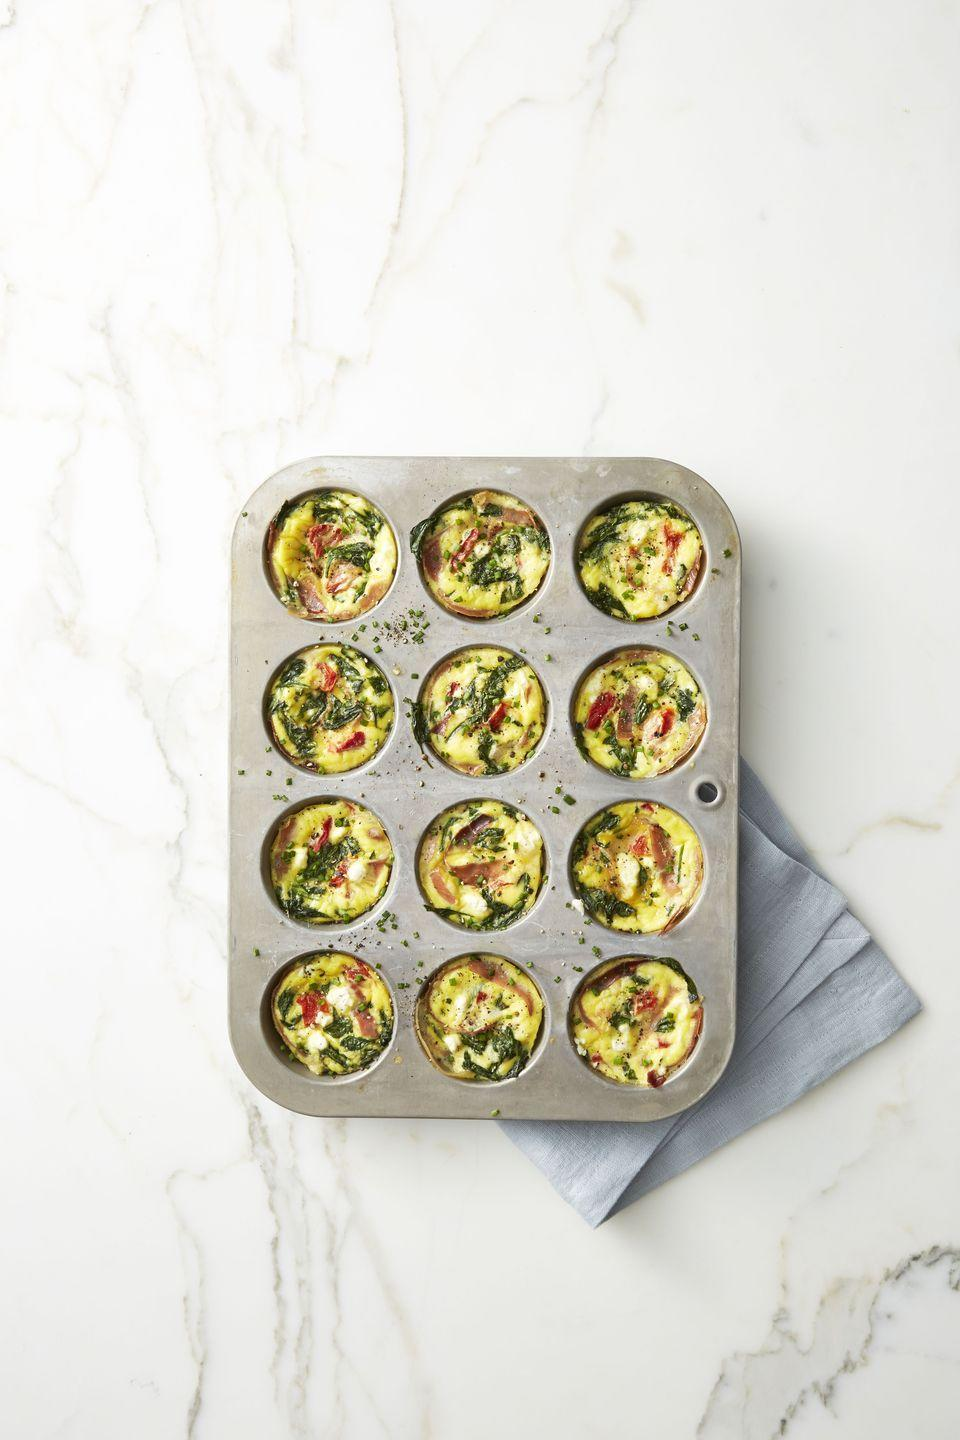 "<p>Get creative with your add-ins for these mini frittatas, but we're partial to this goat cheese-prosciutto combo.</p><p><em><a href=""https://www.goodhousekeeping.com/food-recipes/easy/a42206/spinach-and-prosciutto-frittata-muffins-recipe/"" rel=""nofollow noopener"" target=""_blank"" data-ylk=""slk:Get the recipe for Spinach and Prosciutto Frittata Muffins »"" class=""link rapid-noclick-resp"">Get the recipe for Spinach and Prosciutto Frittata Muffins »</a></em></p>"